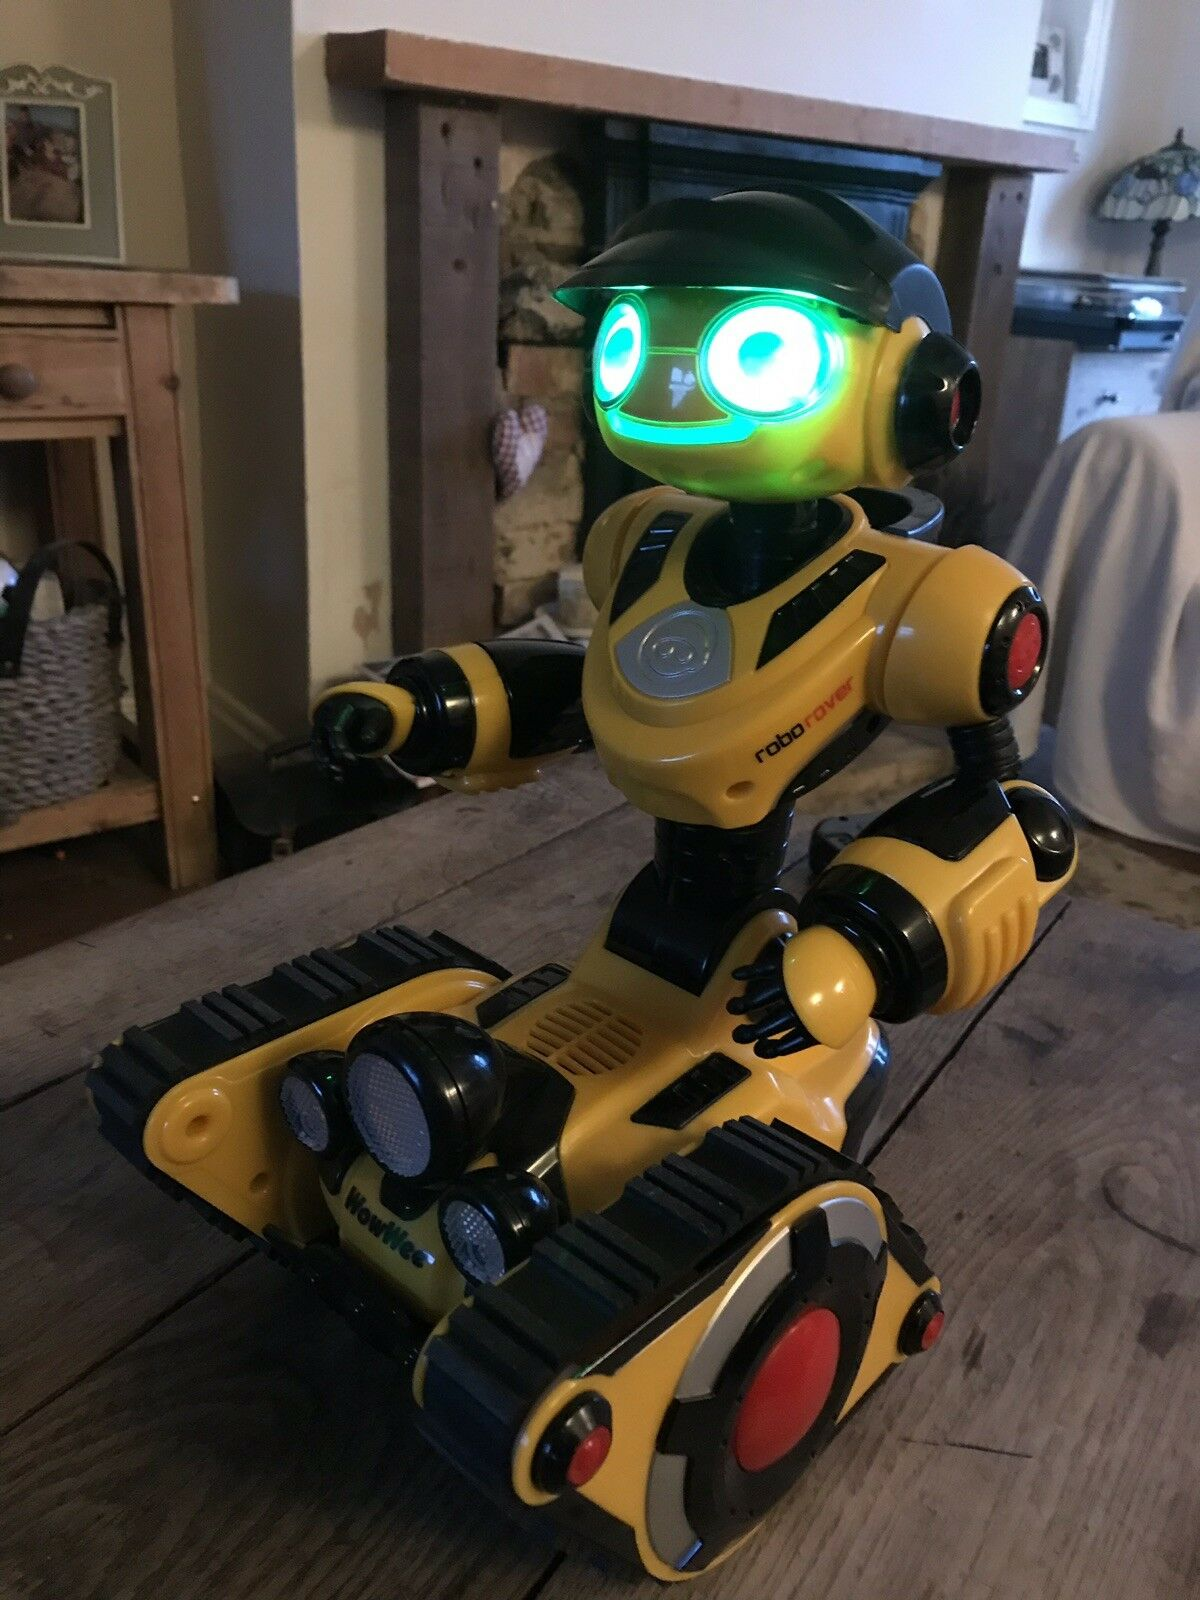 Robo Robot Large One from Wow Wee Yellow tested works